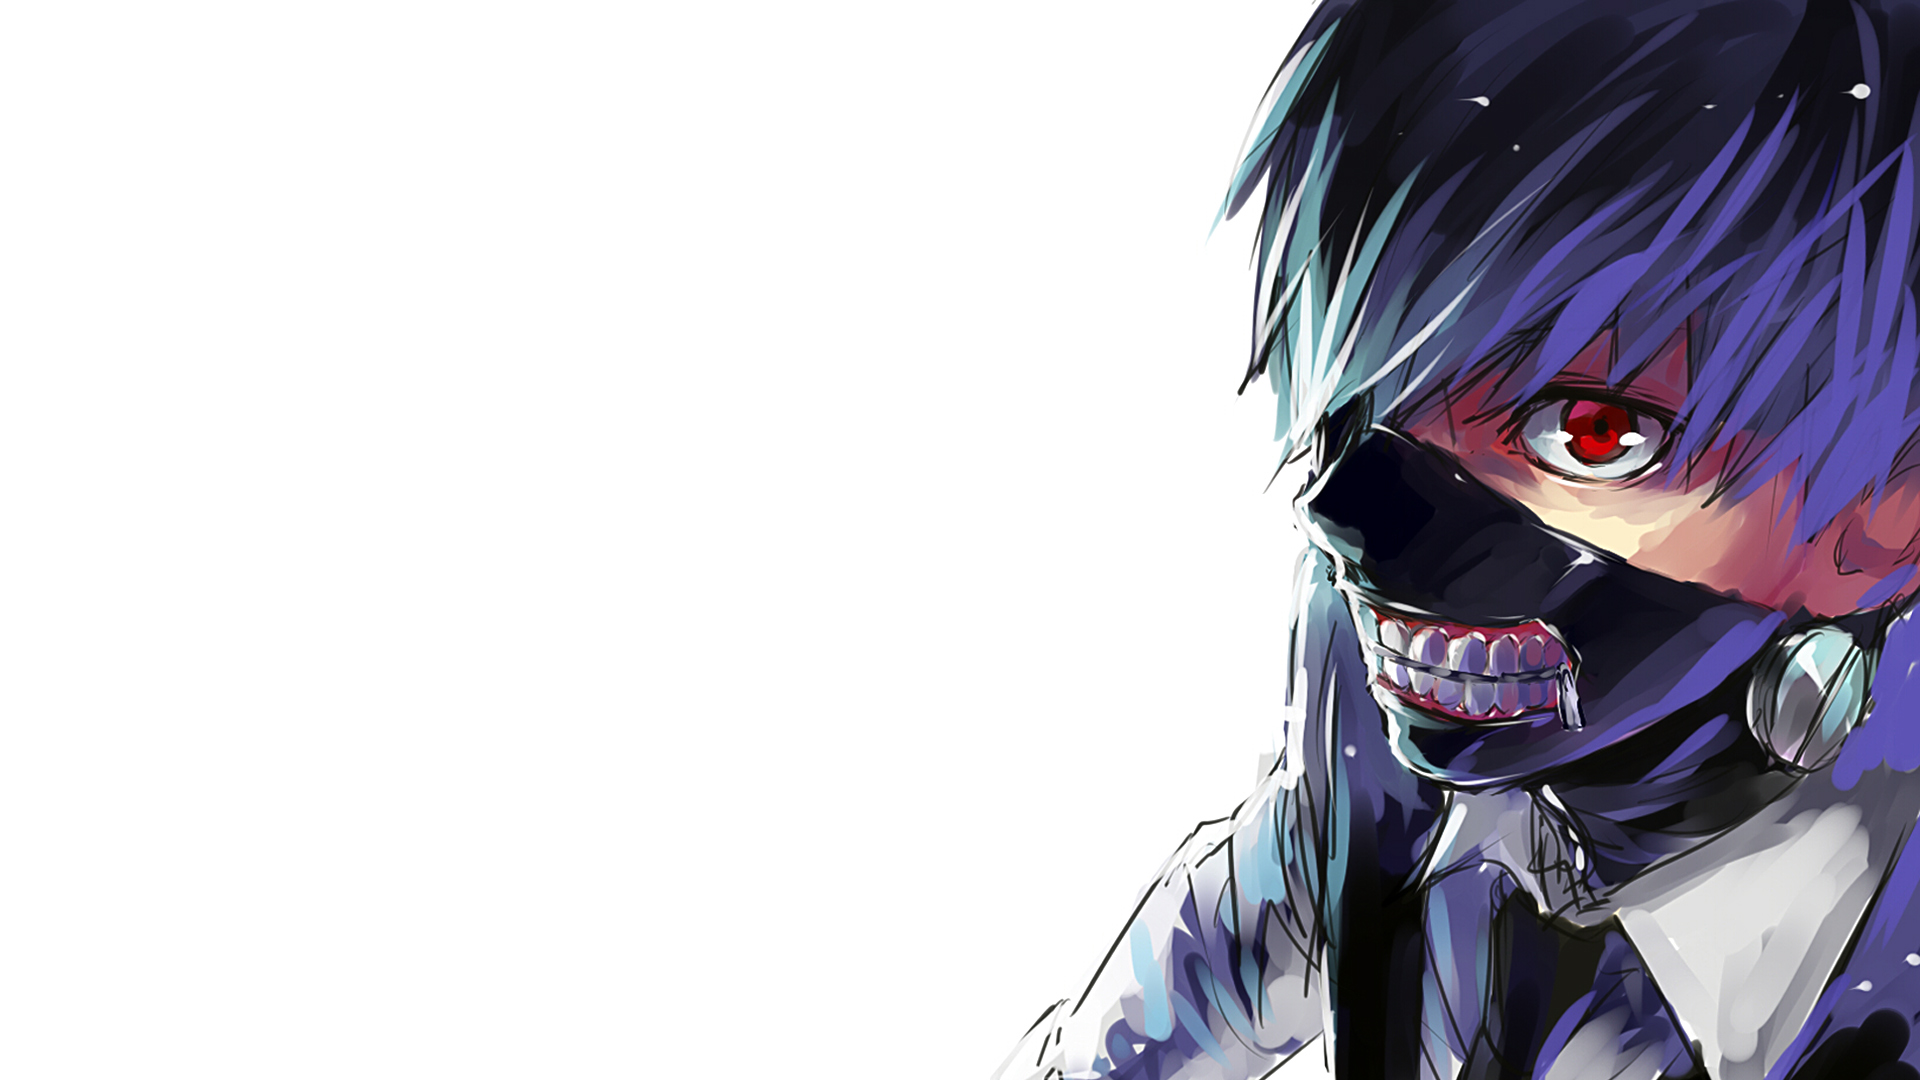 Free Download Mask Tokyo Ghoul Anime Wallpaper Hd 1920x1080